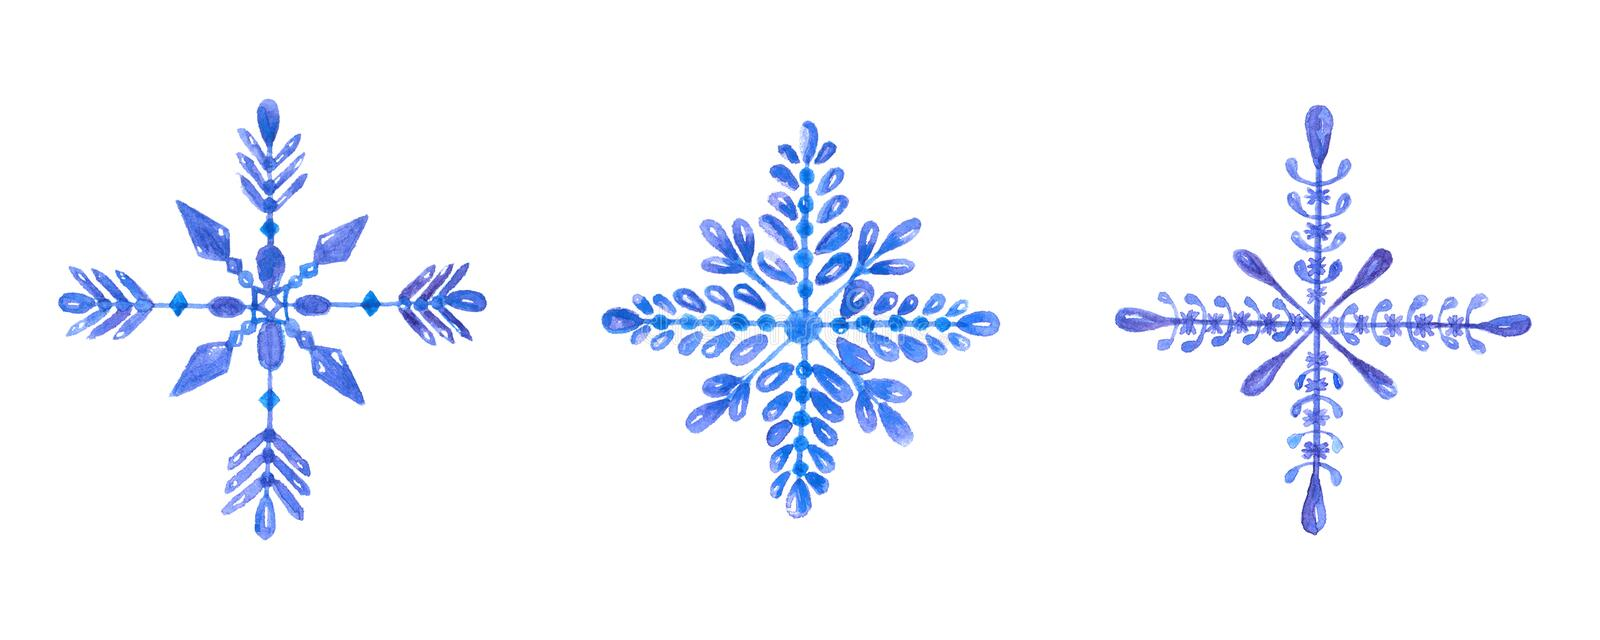 Set of hand-drawn blue watercolor snowflakes isolated on white background. Can be used as a Christmas card vector illustration